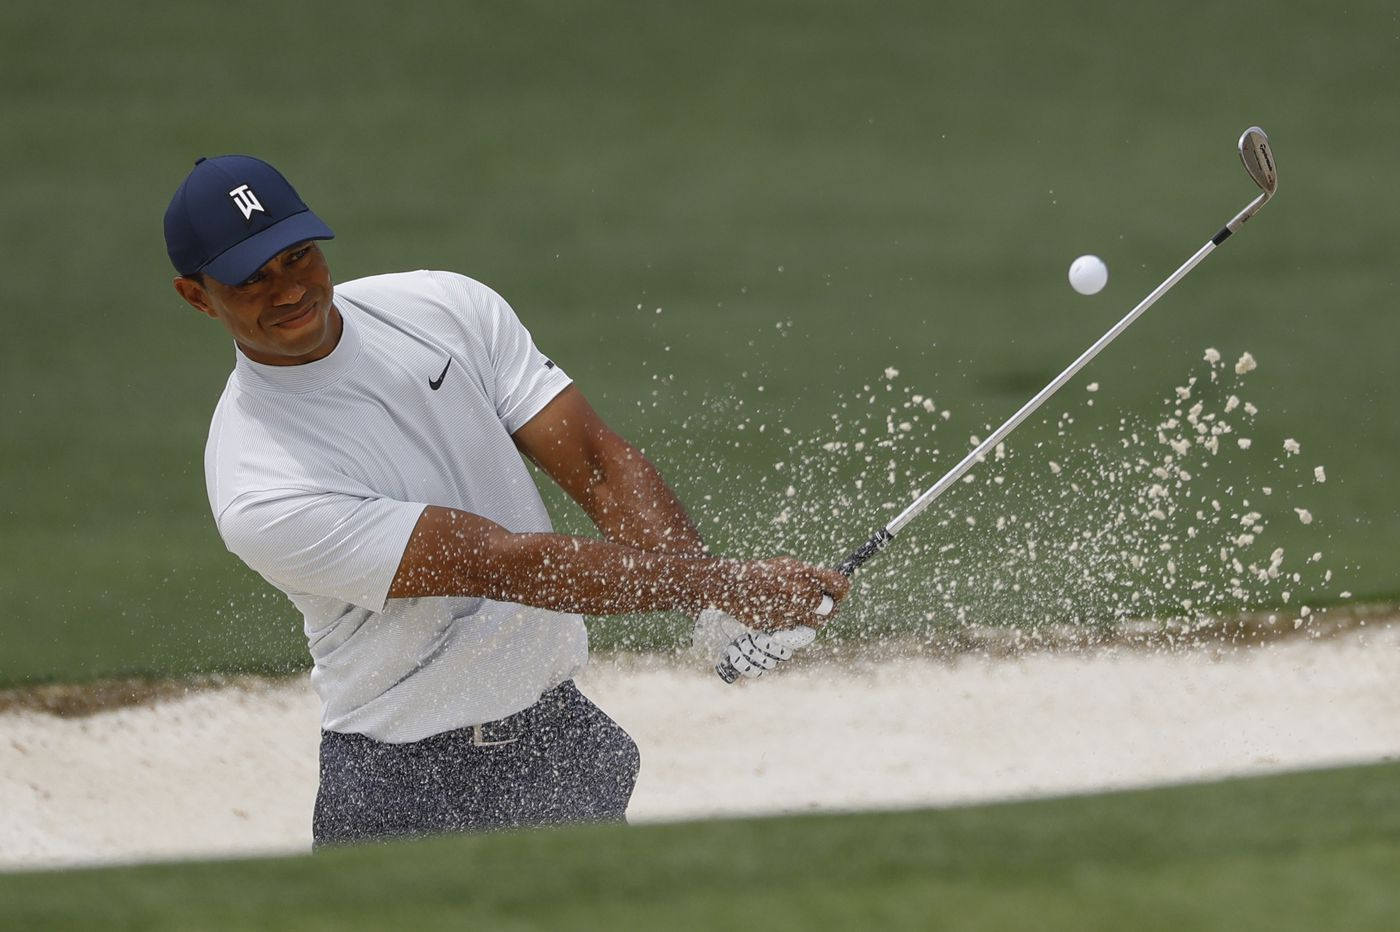 The Masters: Tiger Woods' winning putt to claim 15th major title